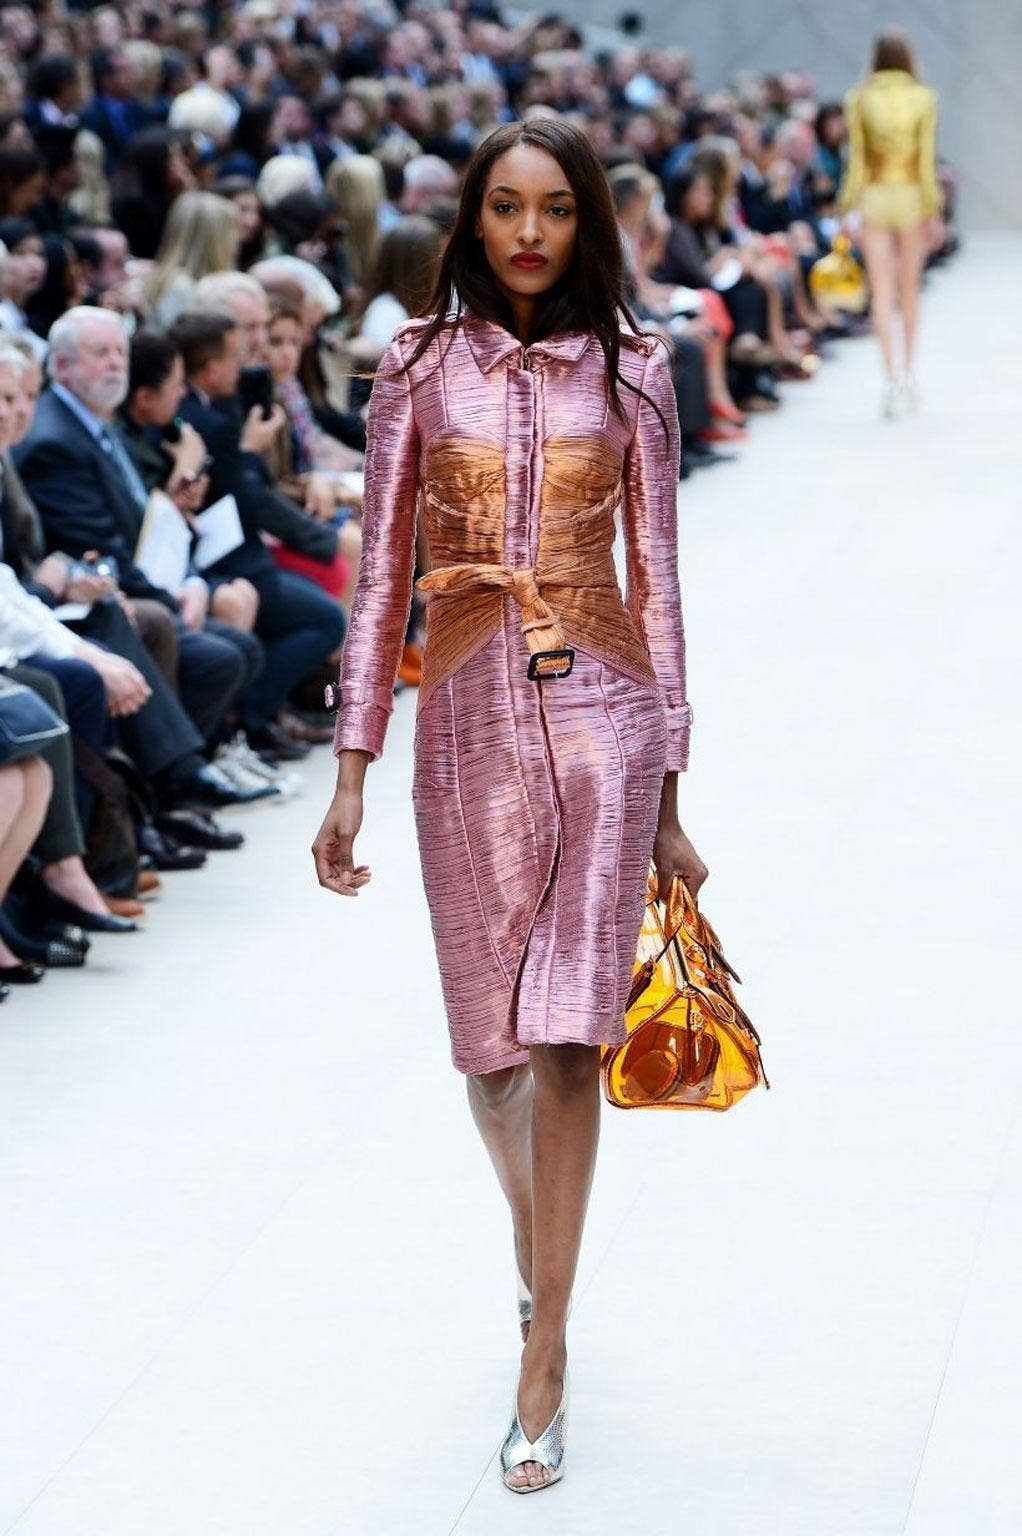 For spring, Burberry's Christopher Bailey dressed models in that fabric, and they shimmered on the catwalk like sweetie wrappers.